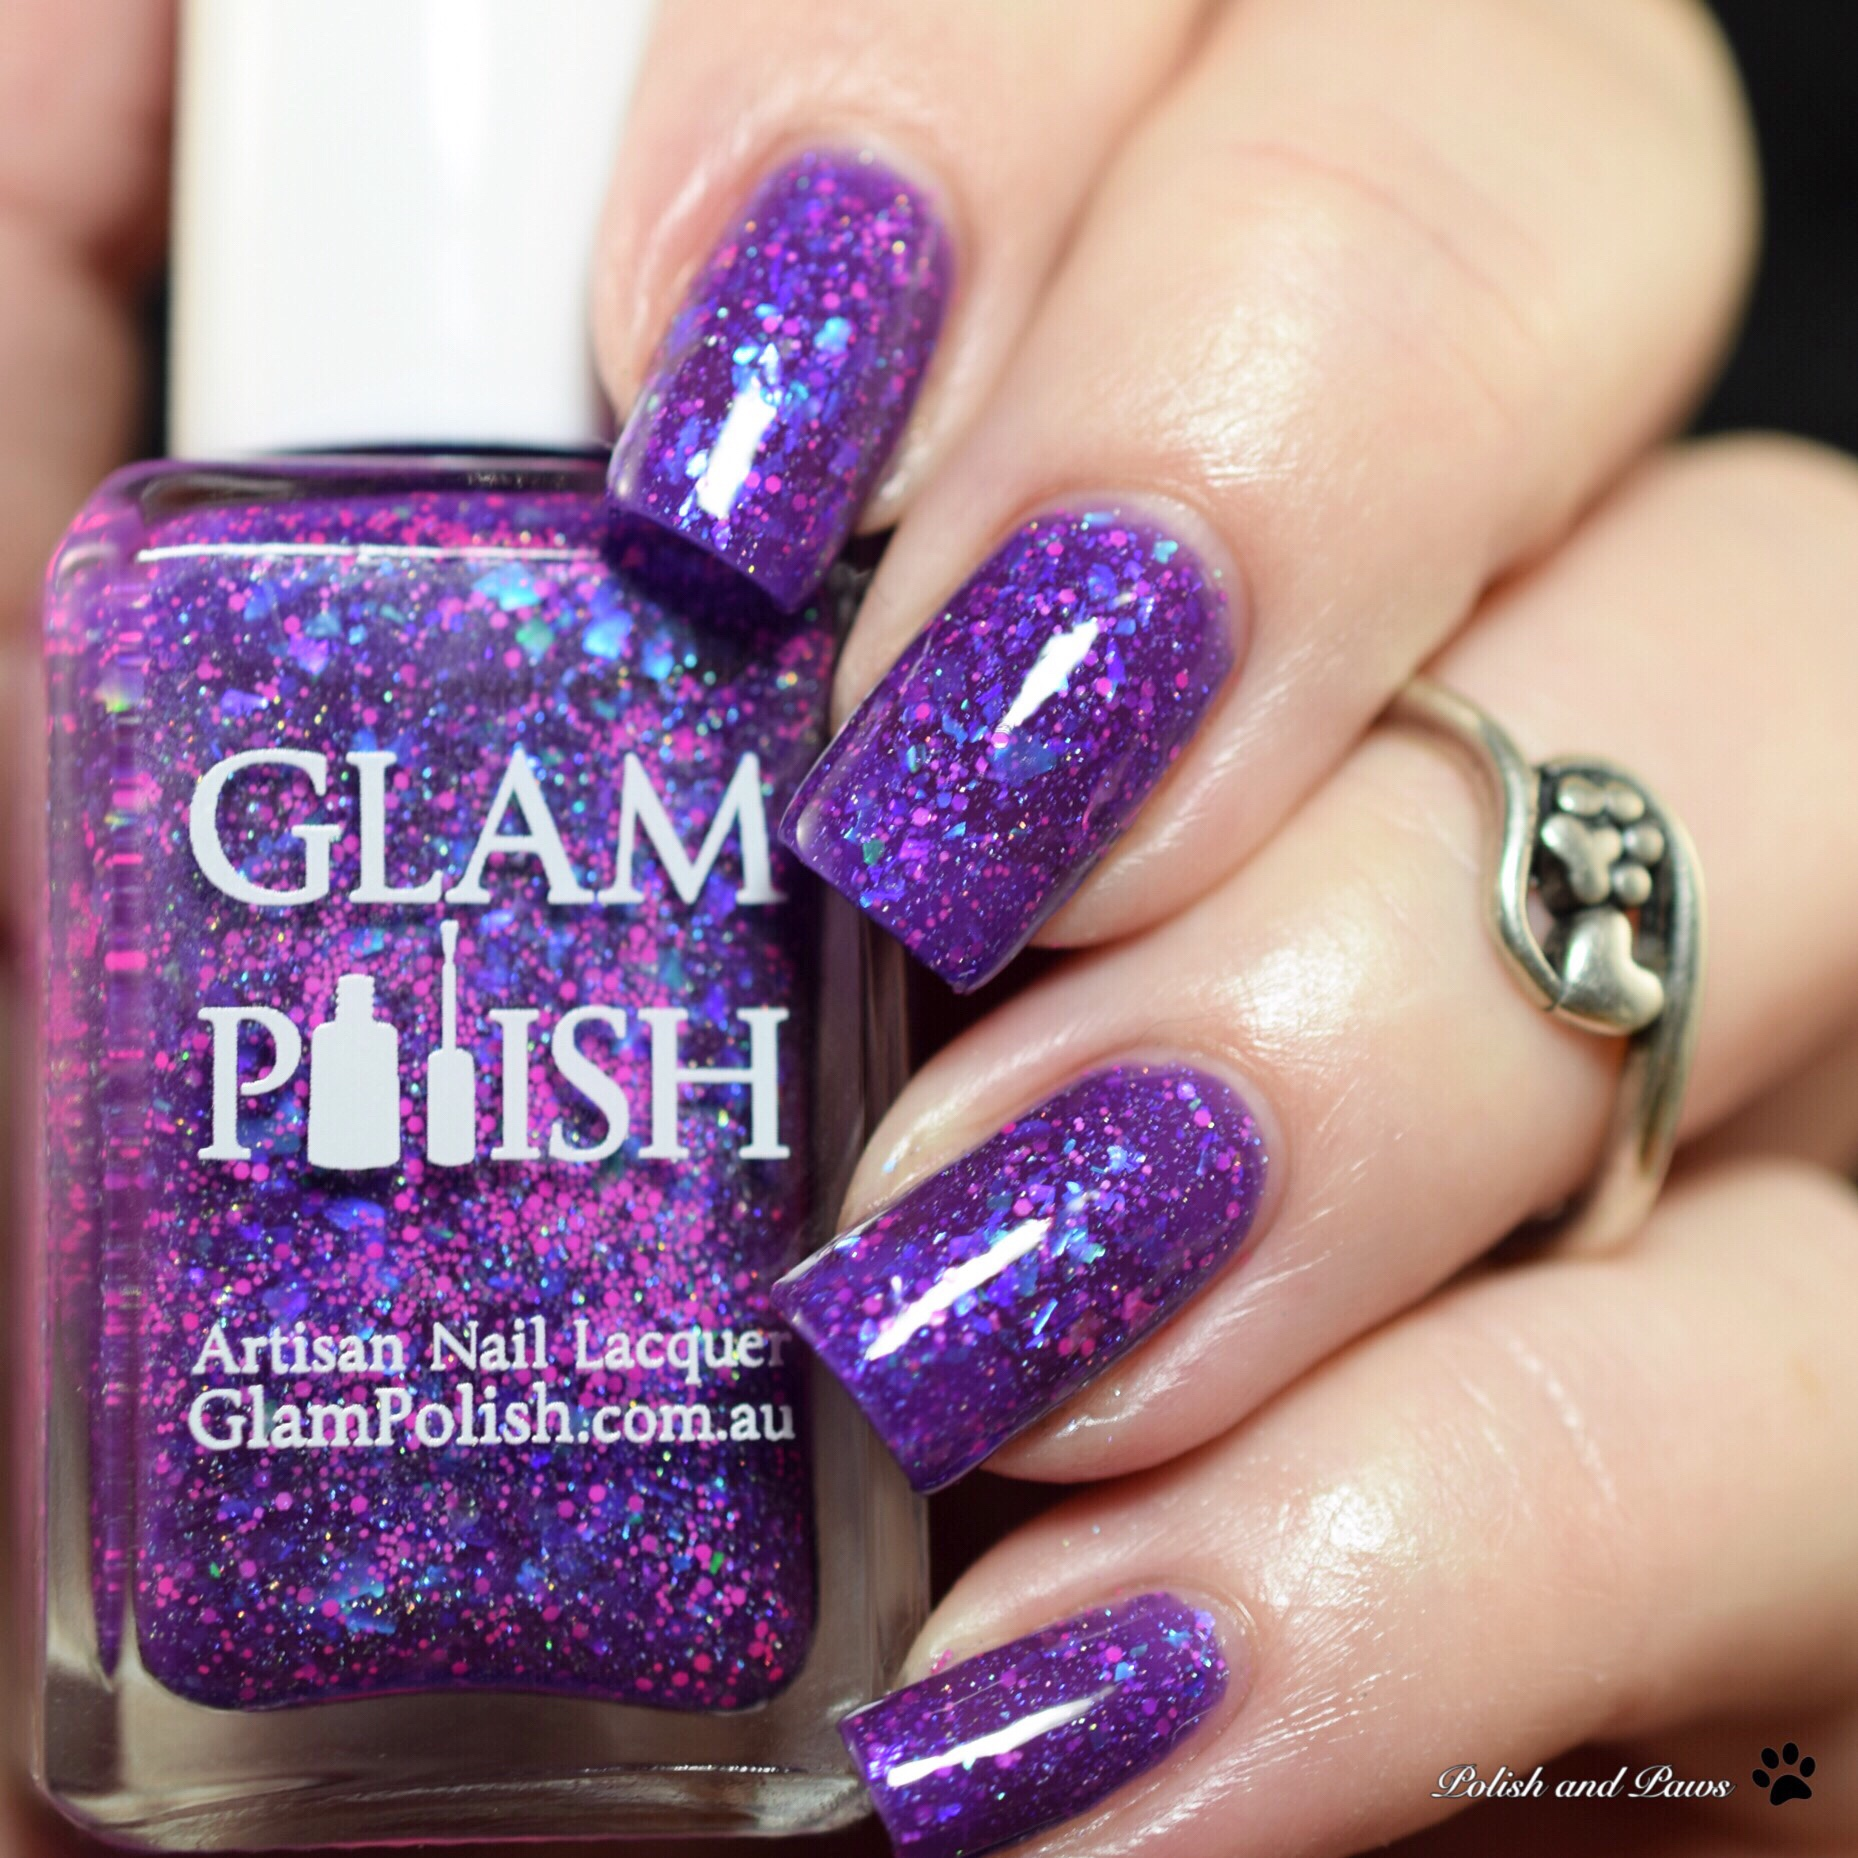 Glam Polish What's Kraken?